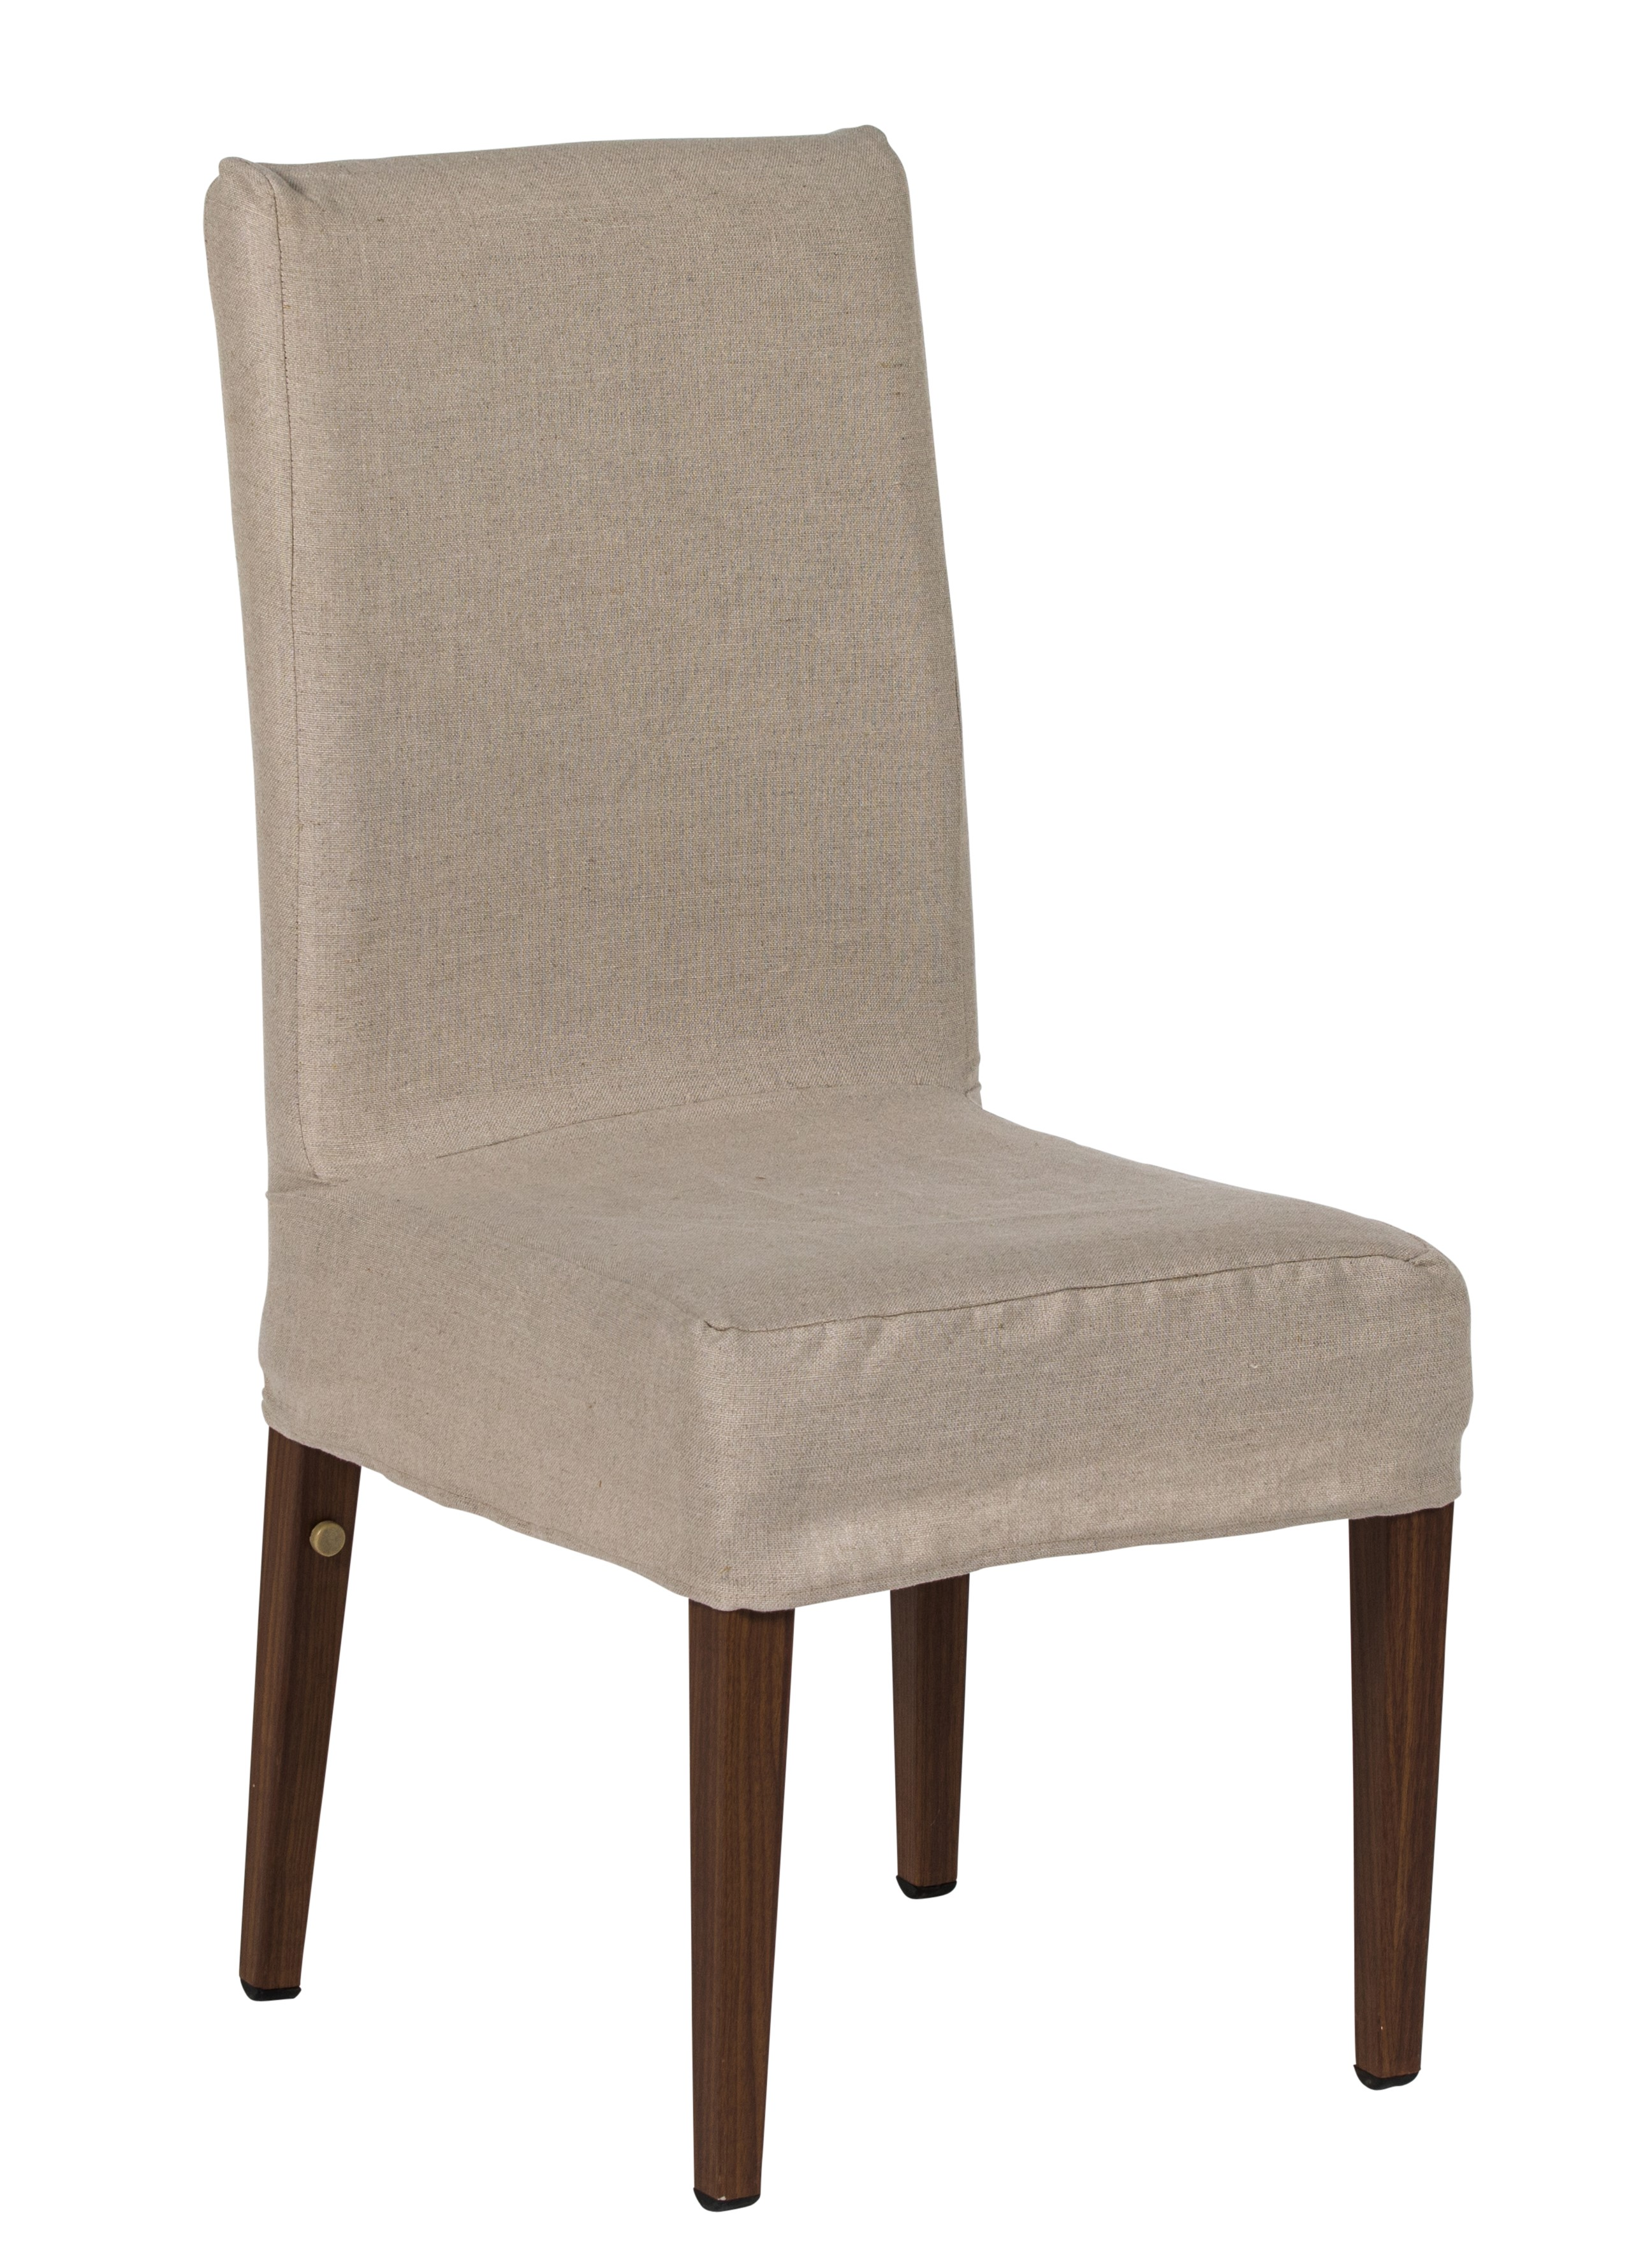 Chairs and Stools Pages Hire